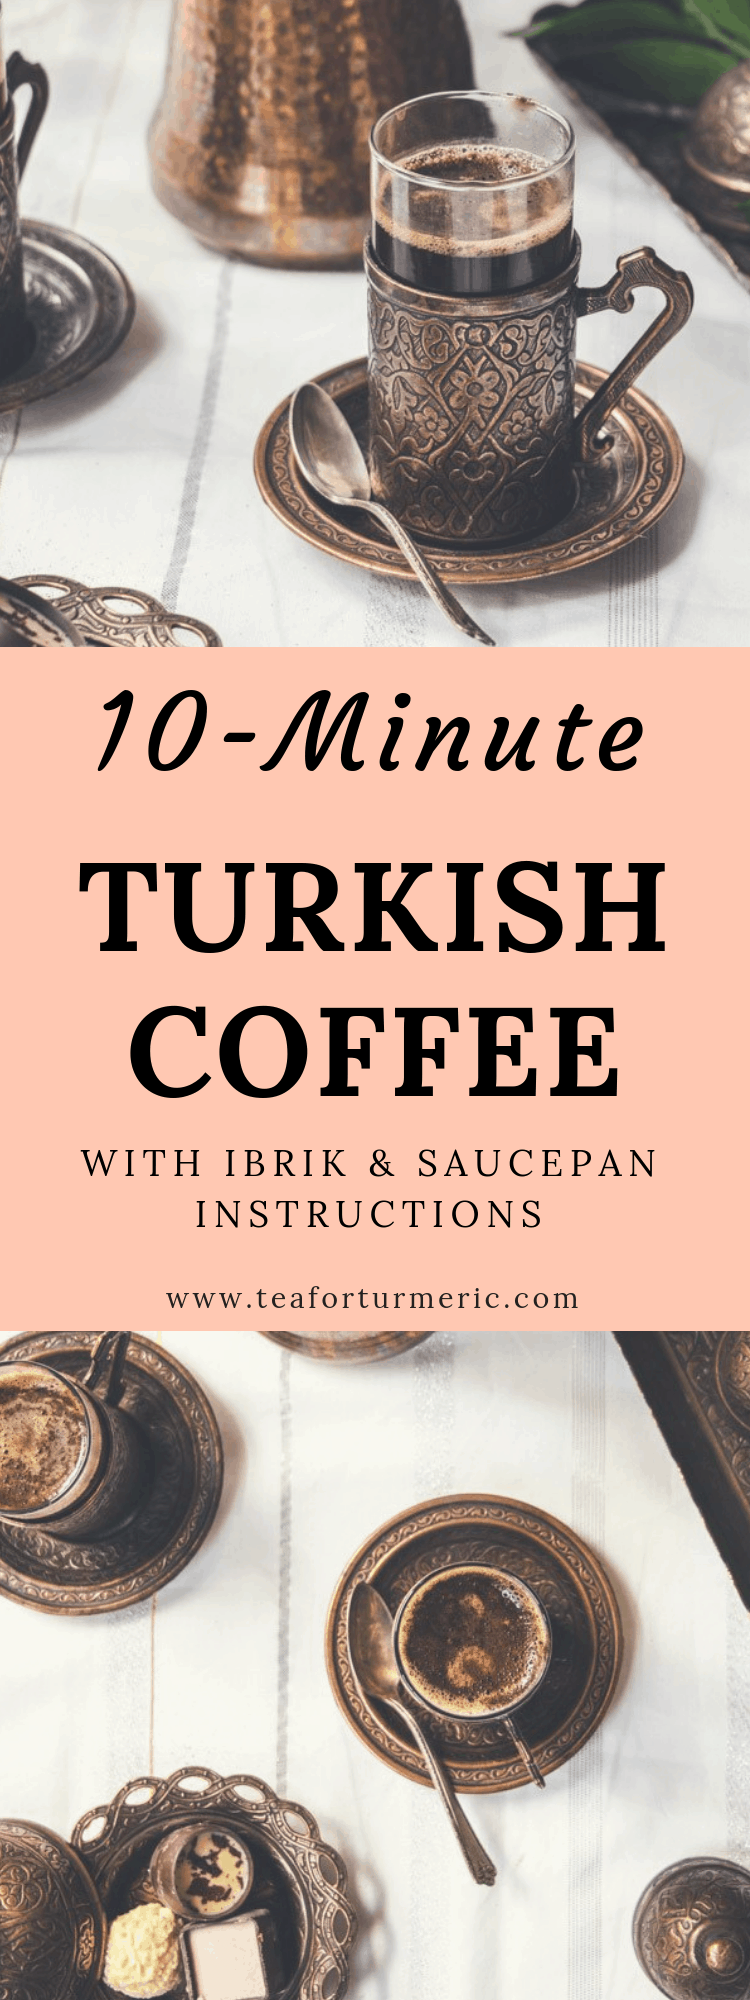 Learn How To Make Turkish Coffee! This recipe includes directions on how to make Turkish coffee with or without a traditional Turkish coffee pot (ibrik). #turkishcoffee #coffee